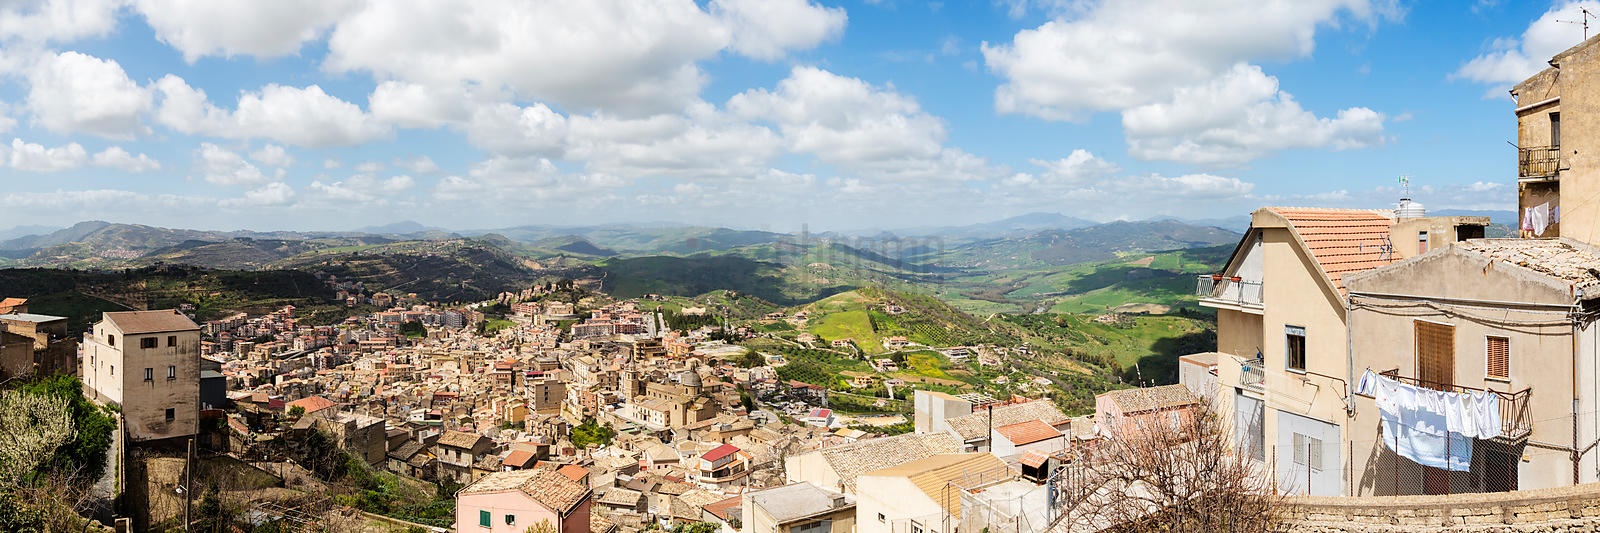 Skyline of Sicilian Hill Town